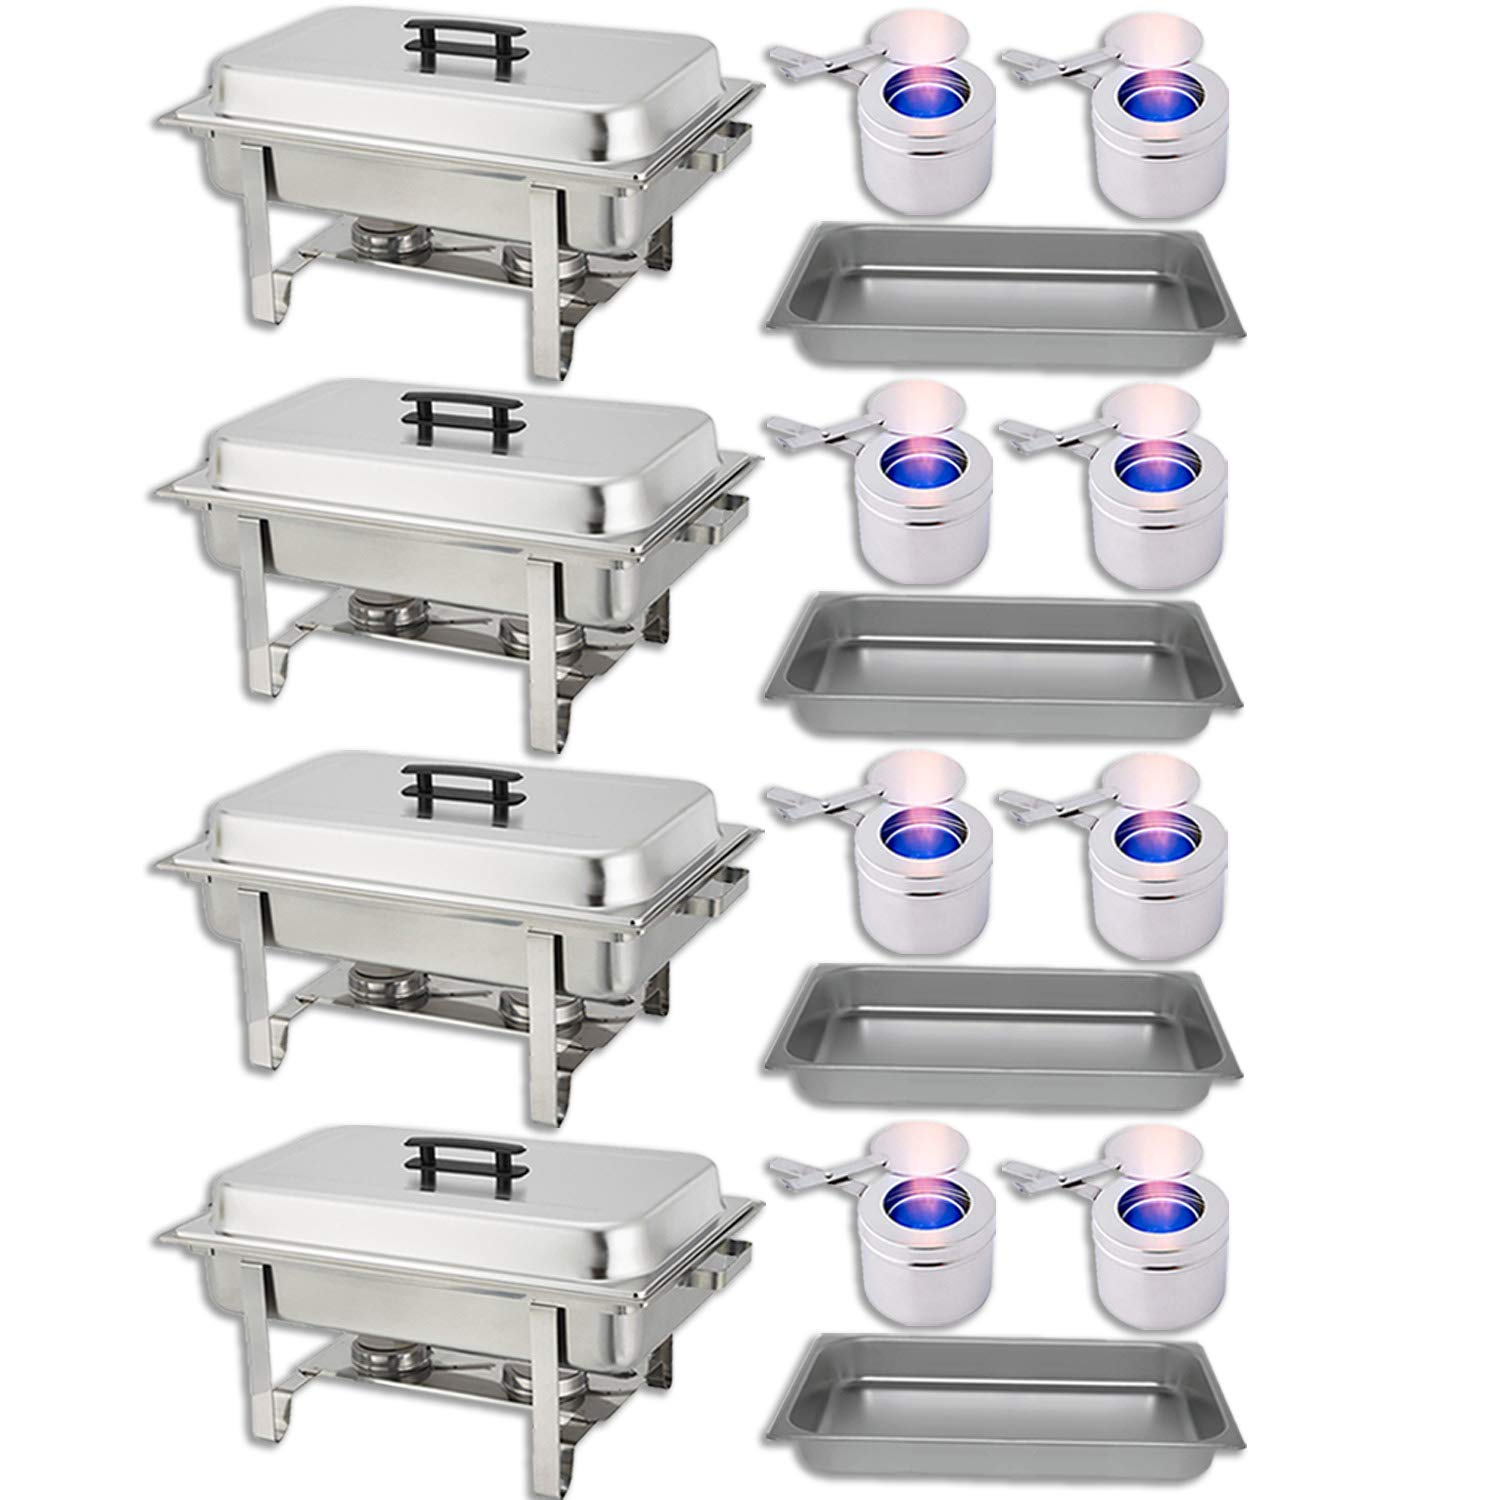 Chafing Dish Buffet Set - Water Pan + Food Pan (8 qt) + Frame + 2 Fuel Holders - Stainless-Steel Warmer Kit 4 Pack by HeroFiber